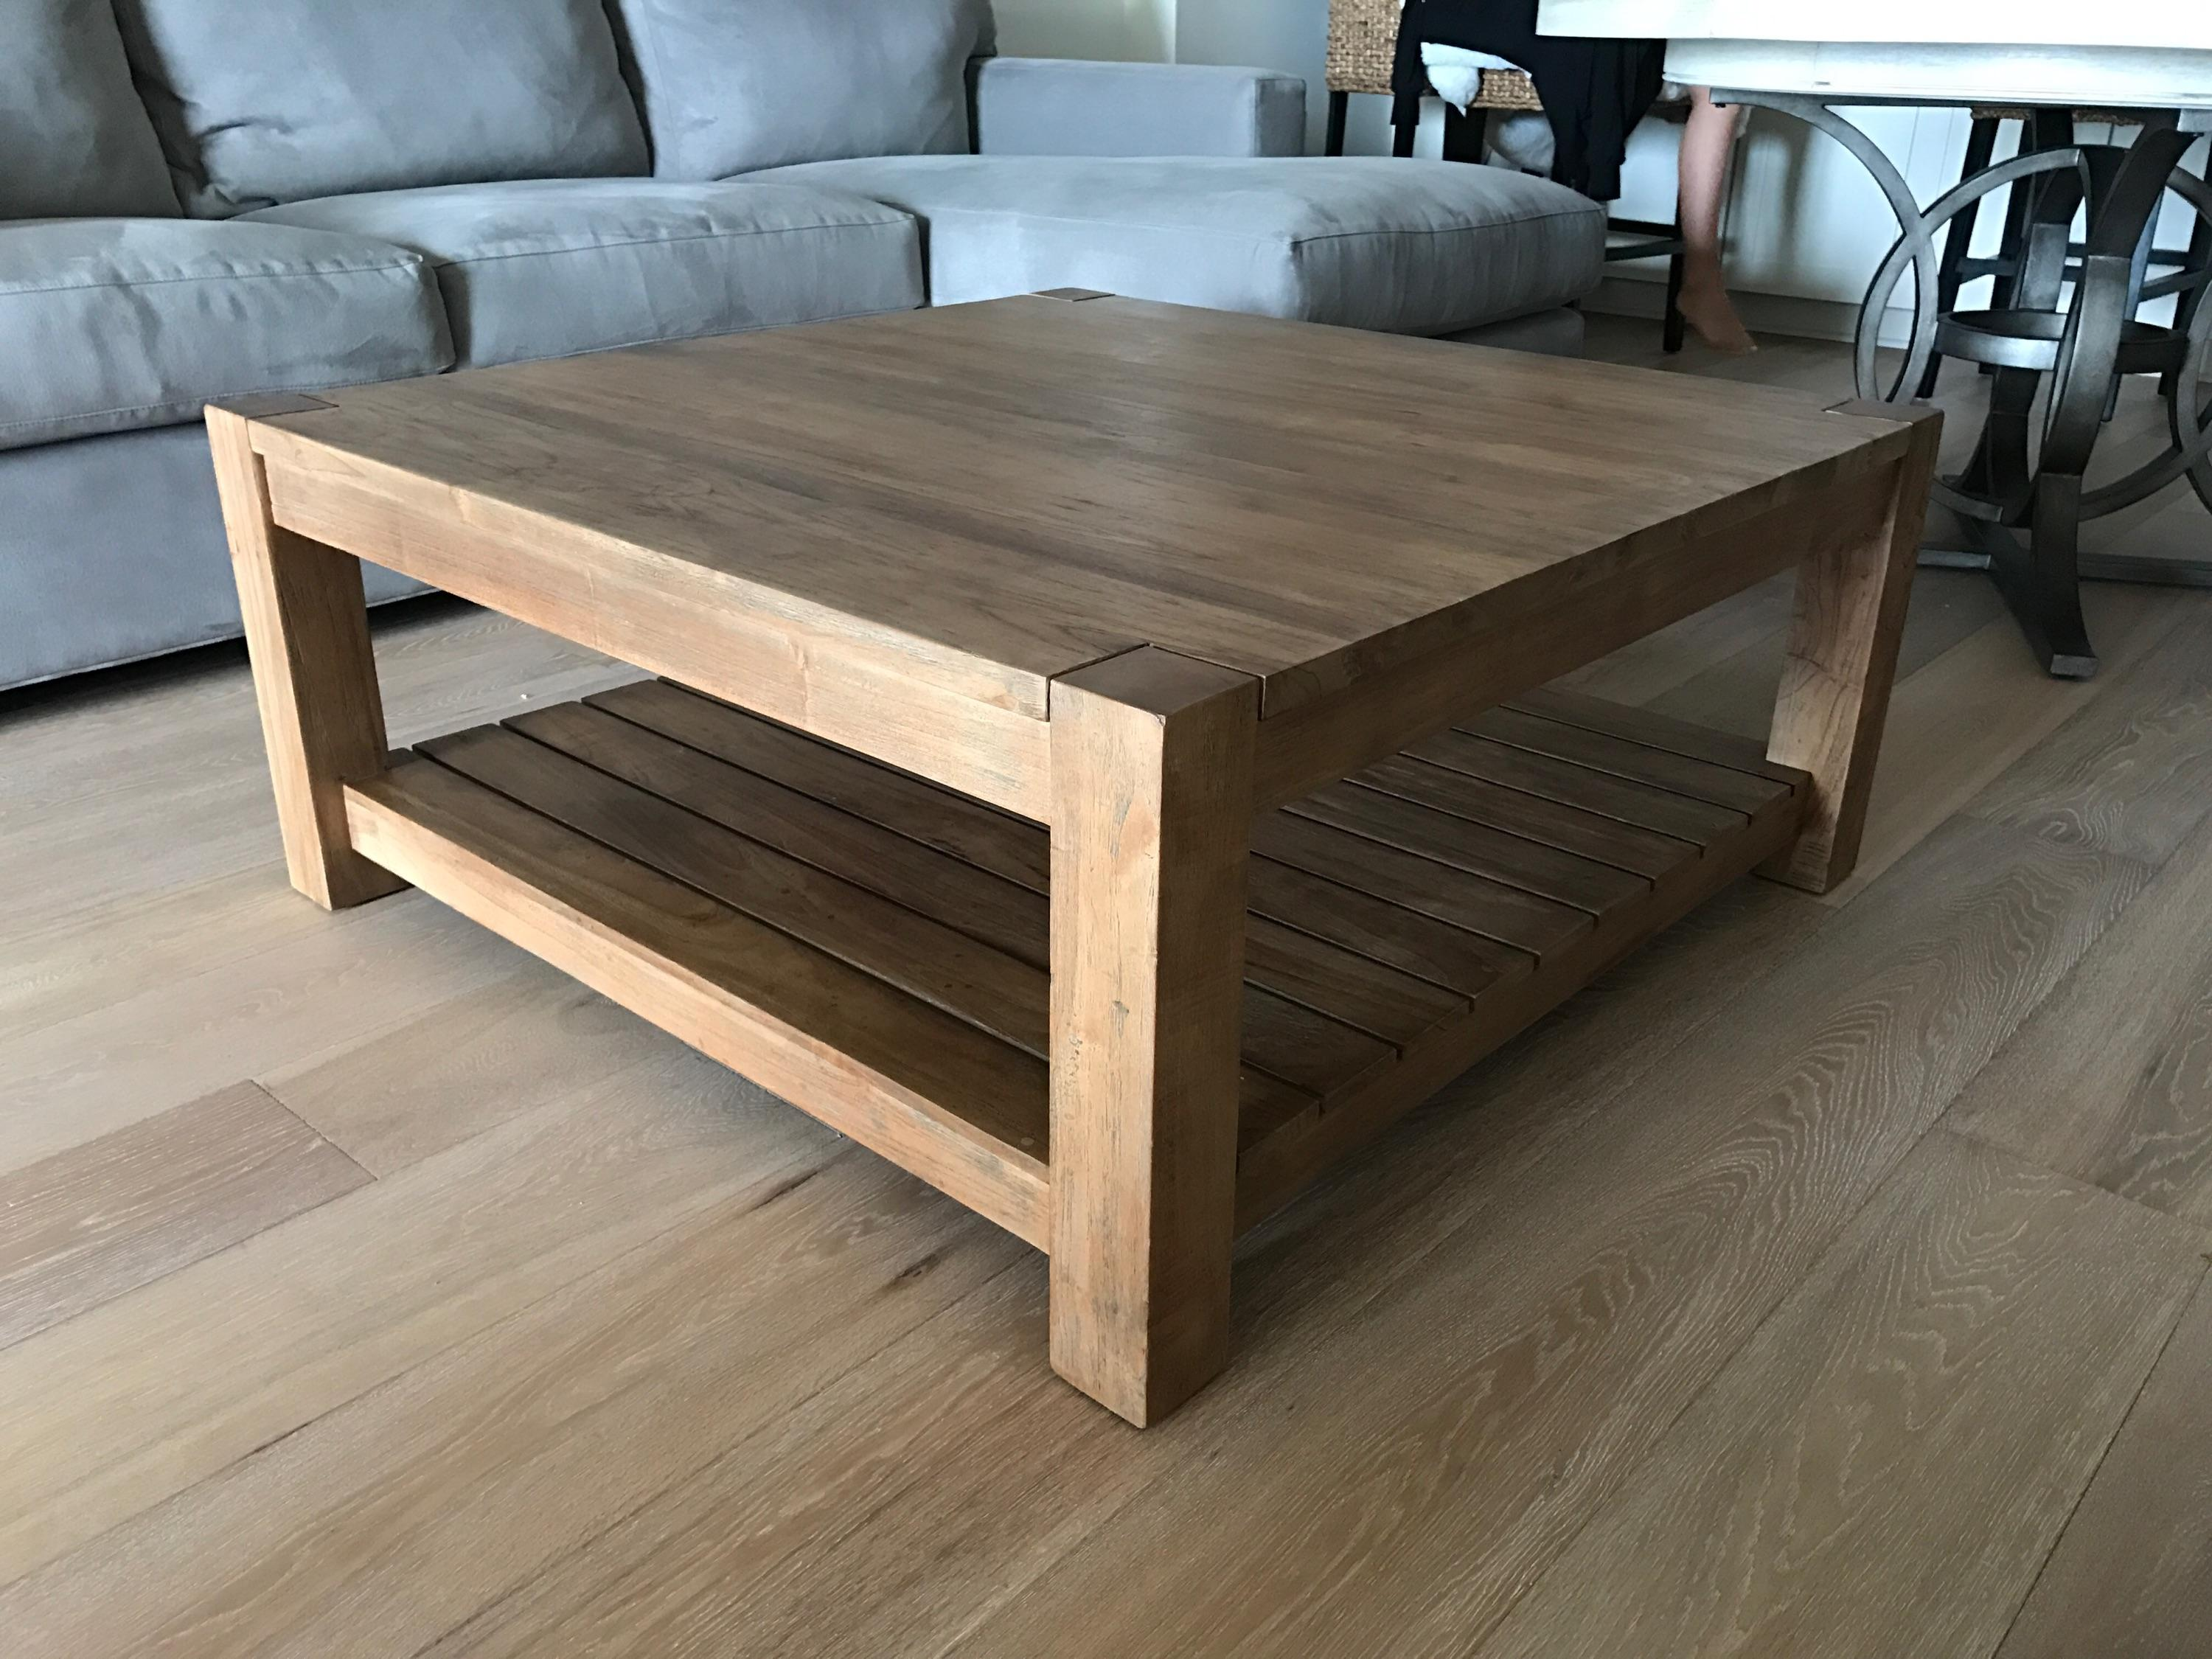 crate and barrel edgewood square coffee table | chairish